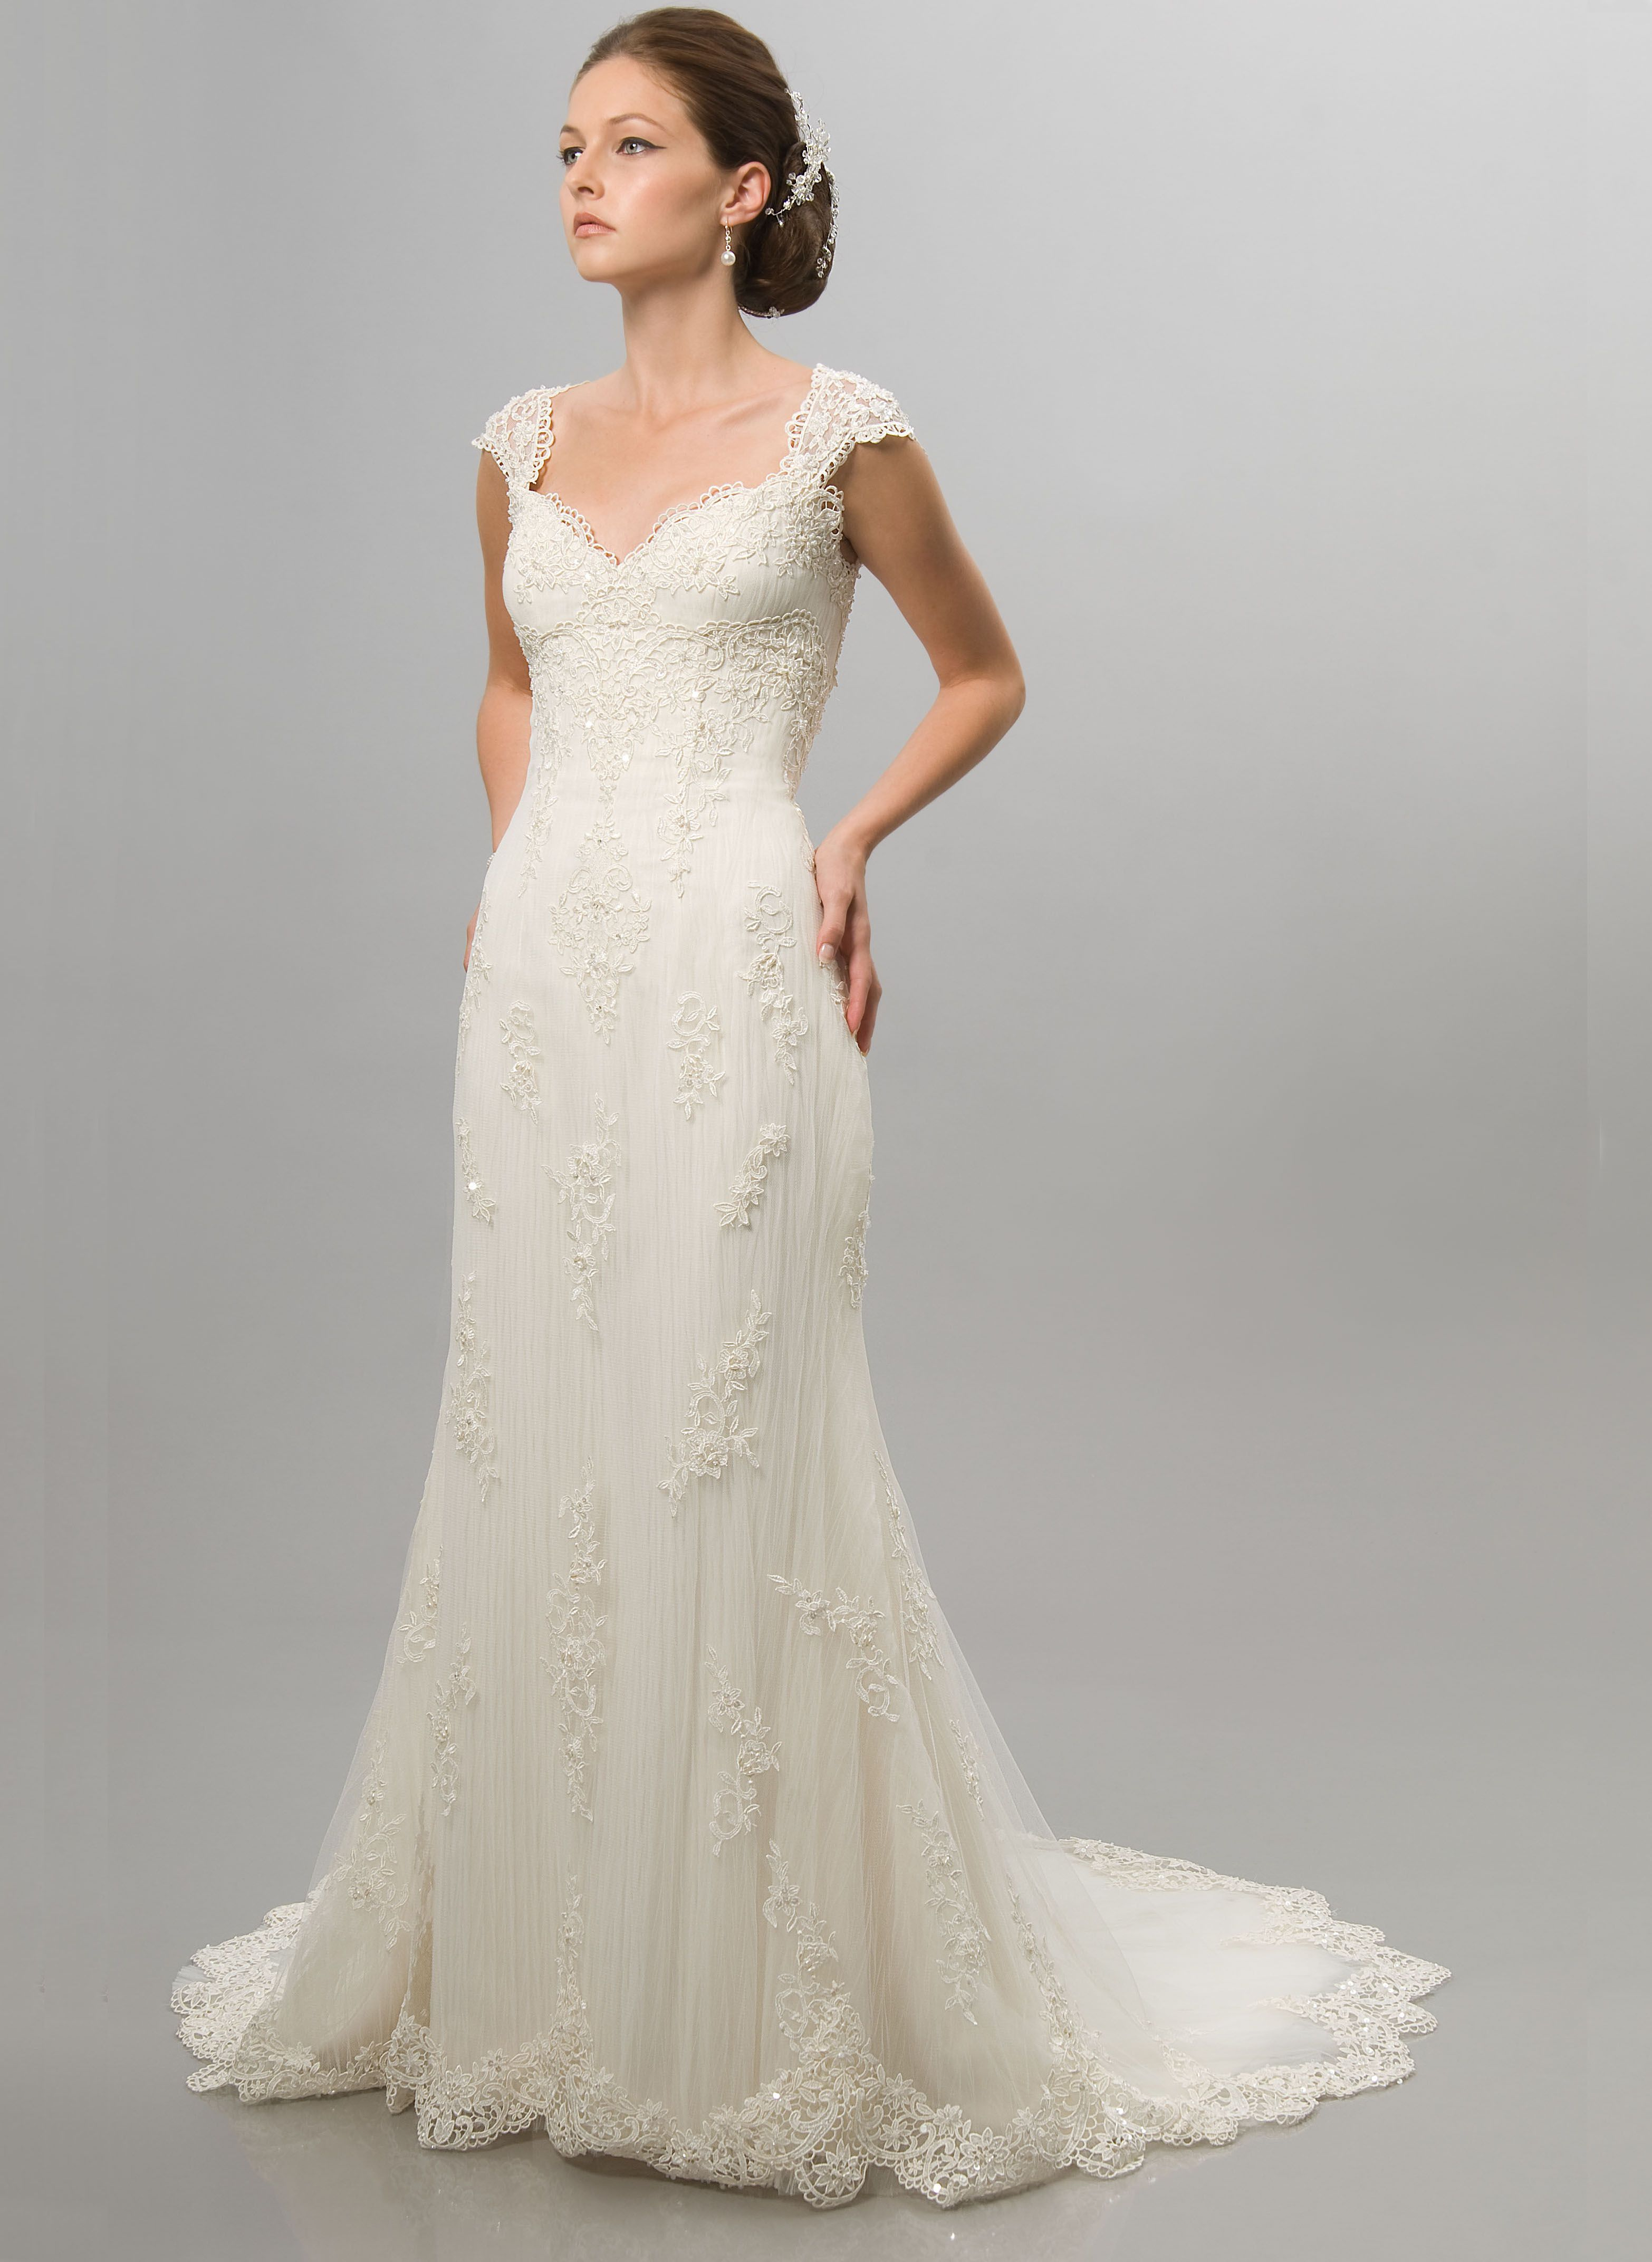 Oh my GOSH This is the wedding dress I have been imaging in my